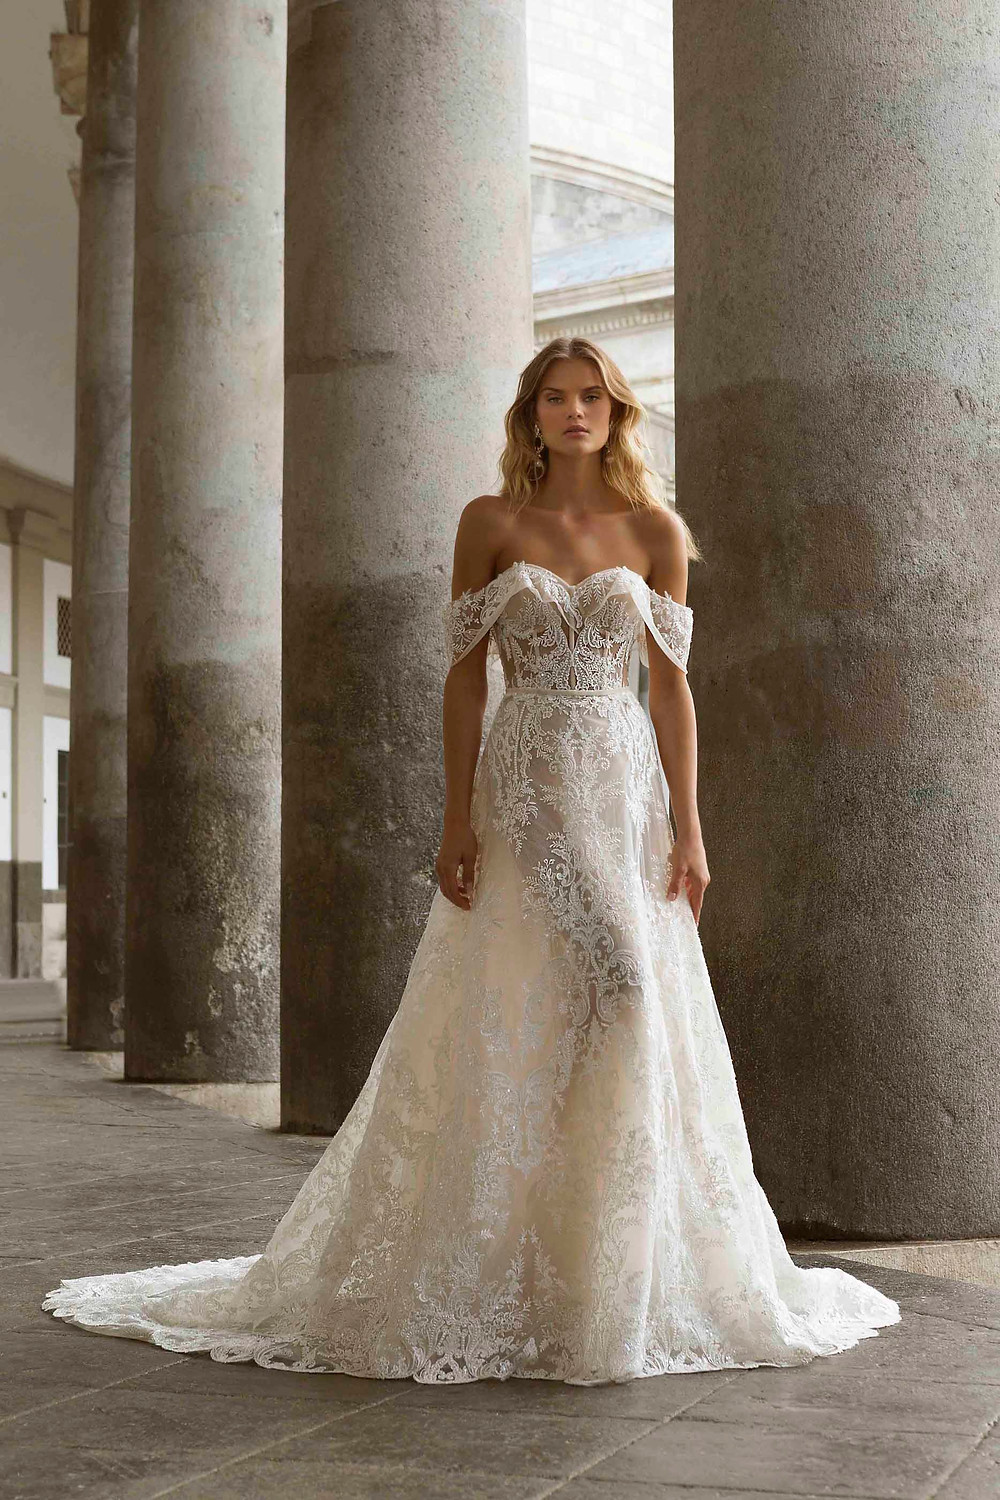 An ivory, off the shoulder, lace A-line wedding dress with corset top